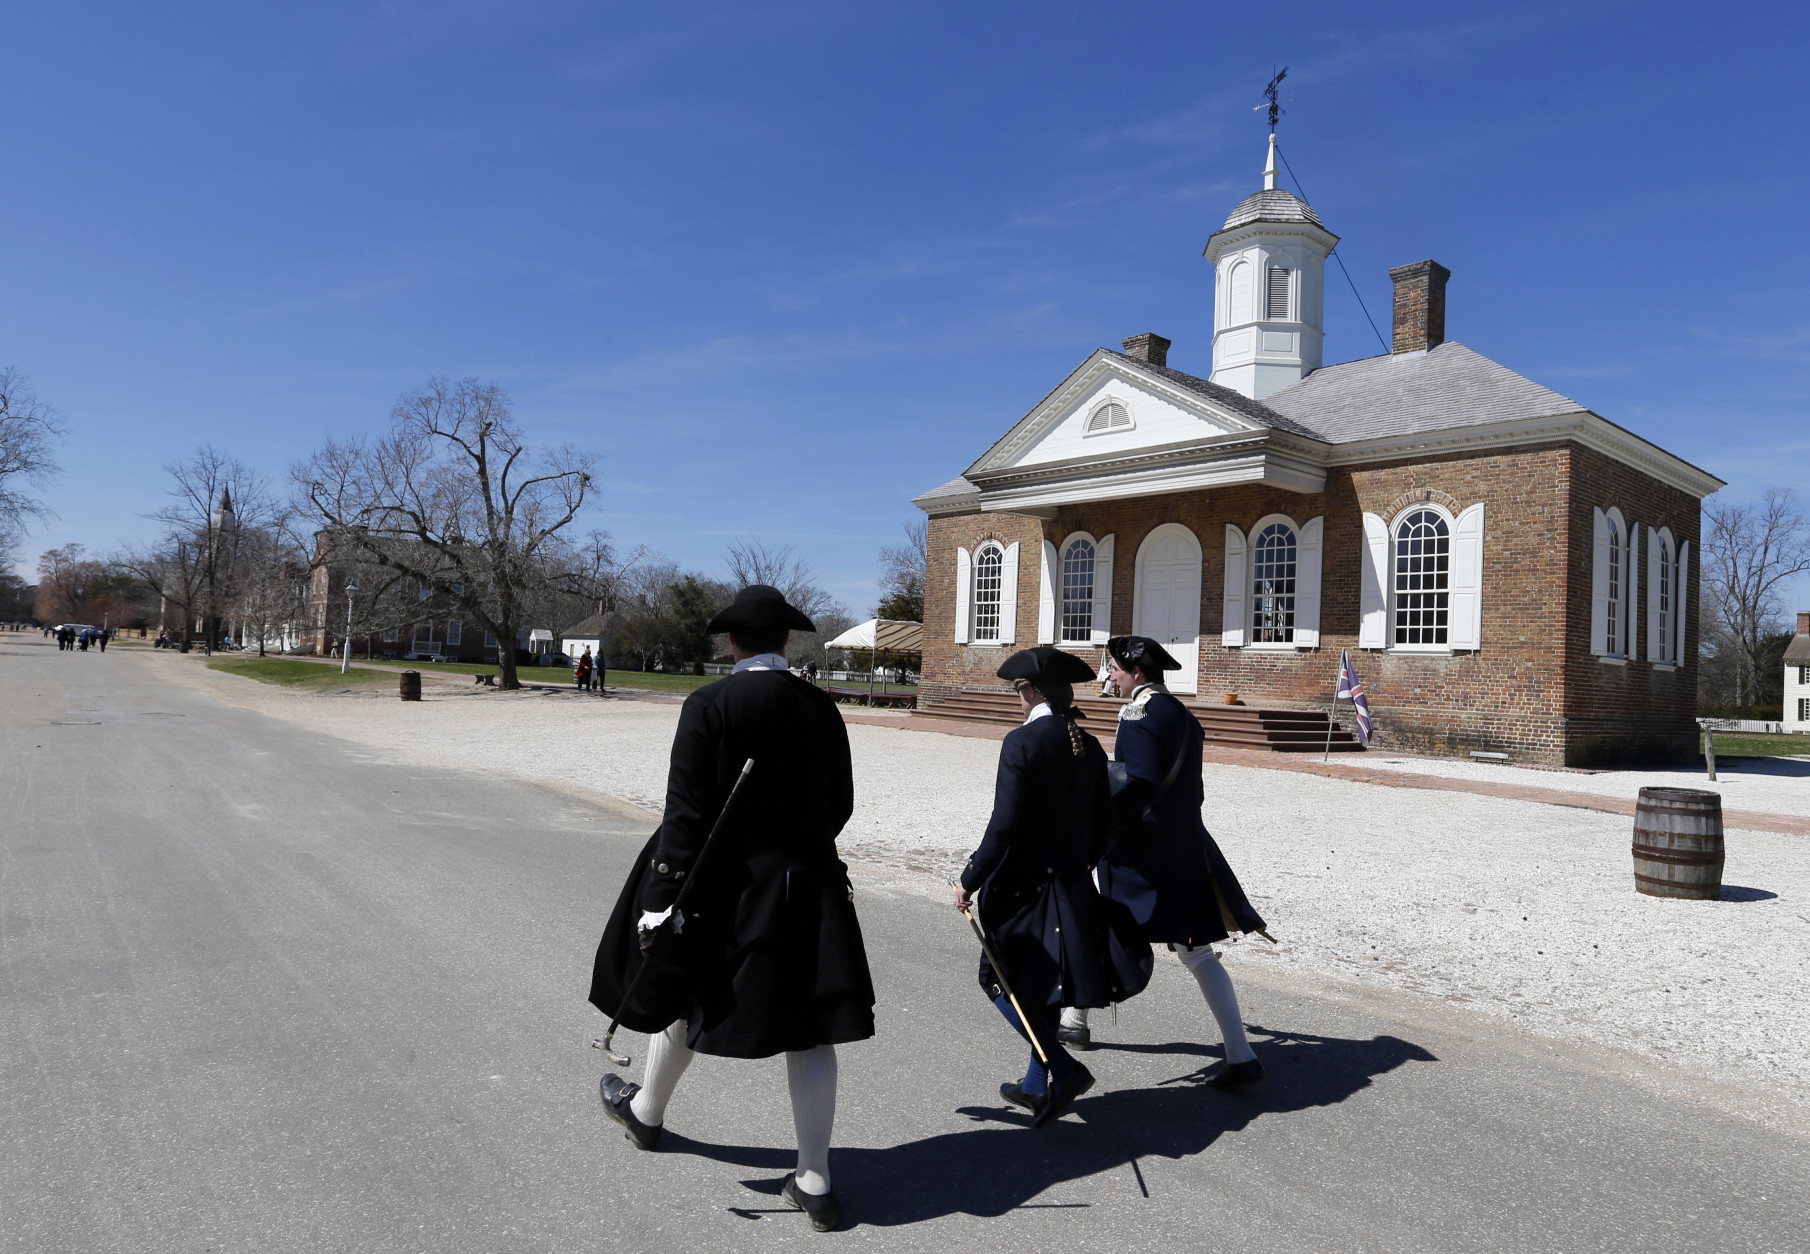 ADVANCE FOR SUNDAY, APRIL 19 AND THEREAFTER - In this photo taken March 18, 2015, actor/interpreters walk in front of the Colonial courthouse along Duke of Gloucester street in the Colonial Williamsburg area of Williamsburg, Va. John Hinckley, the last man to shoot an American president now spends most of the year in a house overlooking the 13th hole of a golf course in a gated community in Williamsburg. An almost three-hour drive south of Hinckley's institutional home of St. Elizabeths Hospital in the nation's capital, Williamsburg is both a tourist destination and a retirement mecca.  (AP Photo/ Steve Helber)